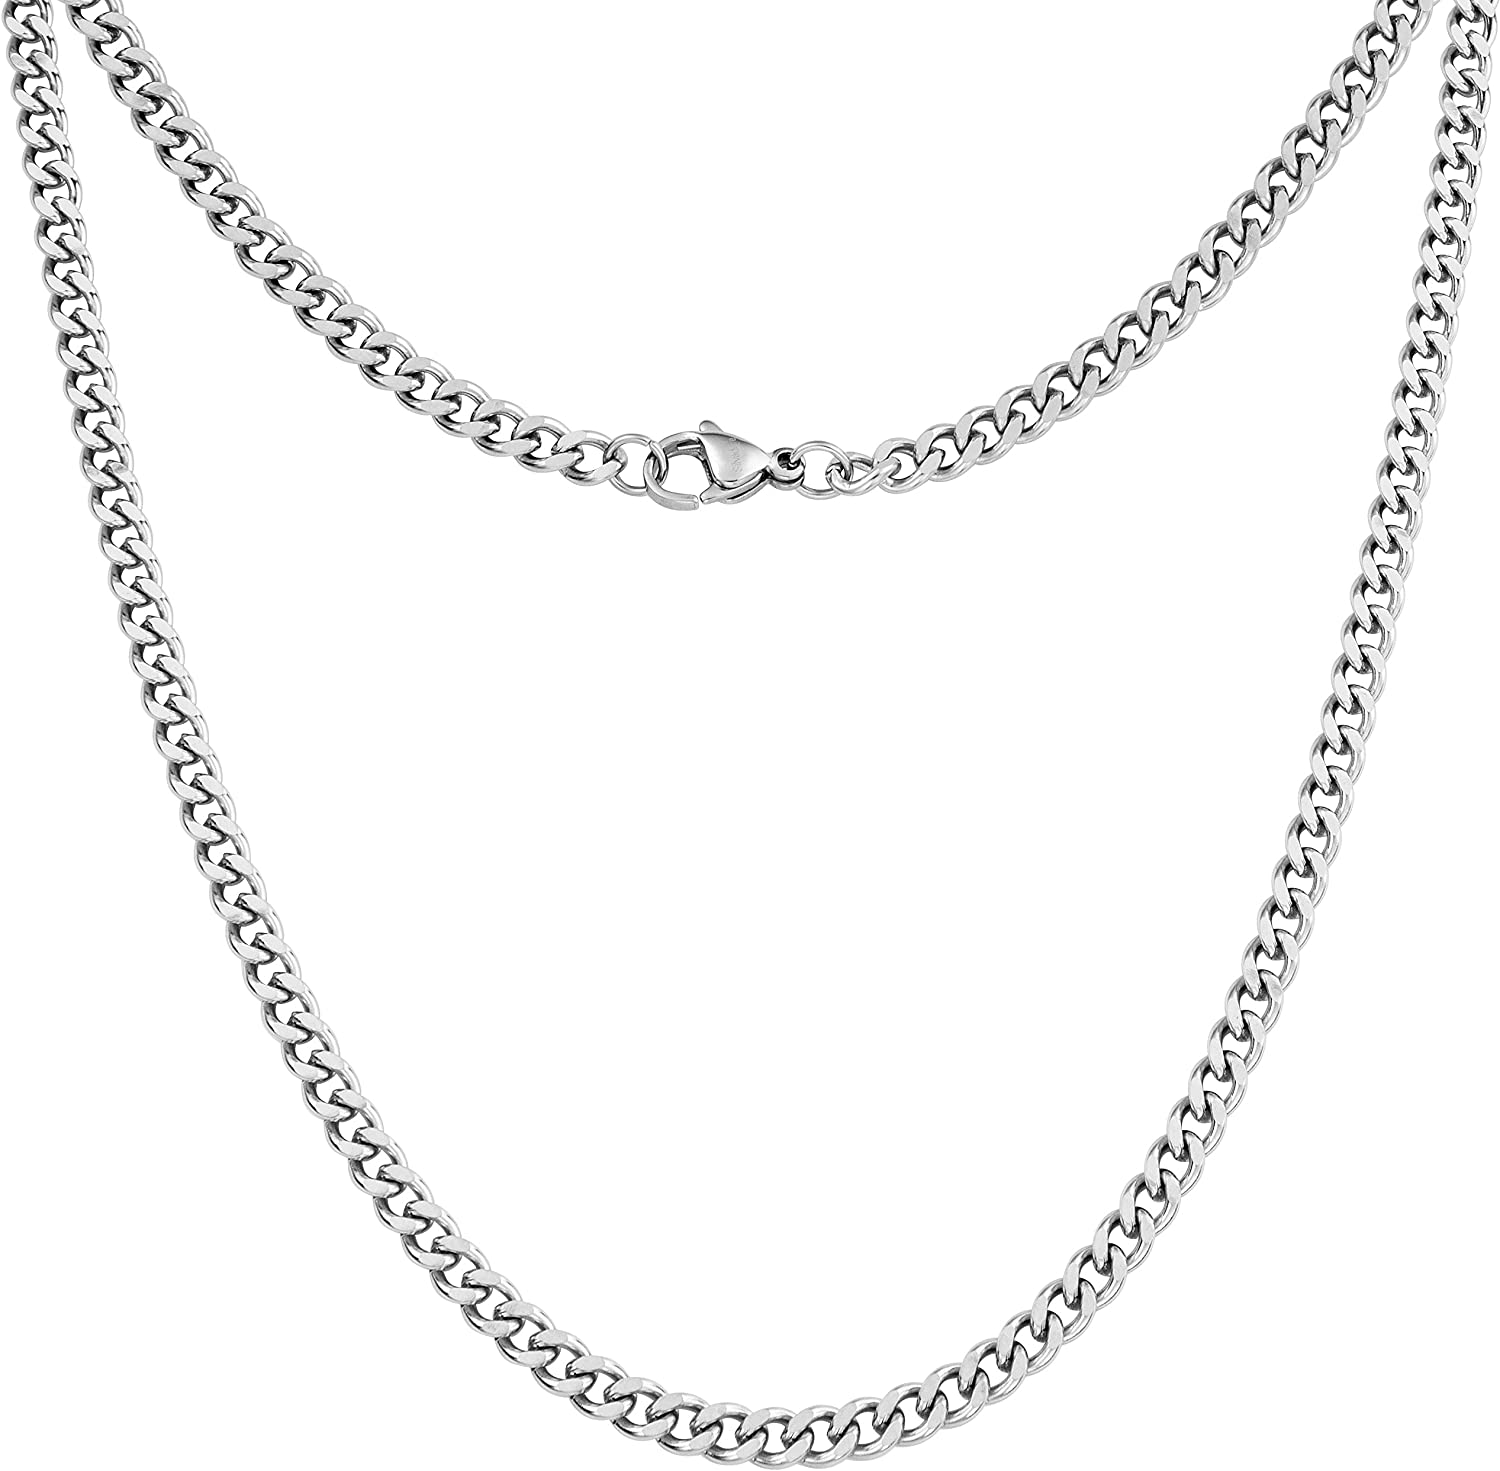 Buy Silvadore 4mm Curb Mens Necklace - Silver Chain Cuban Stainless Steel Jewelry - Neck Link Chains for Men Man Women Boys Male Military - 14 16 18 20 22 24 26 36 inch UK Online in Turkey. B0711XSV7B